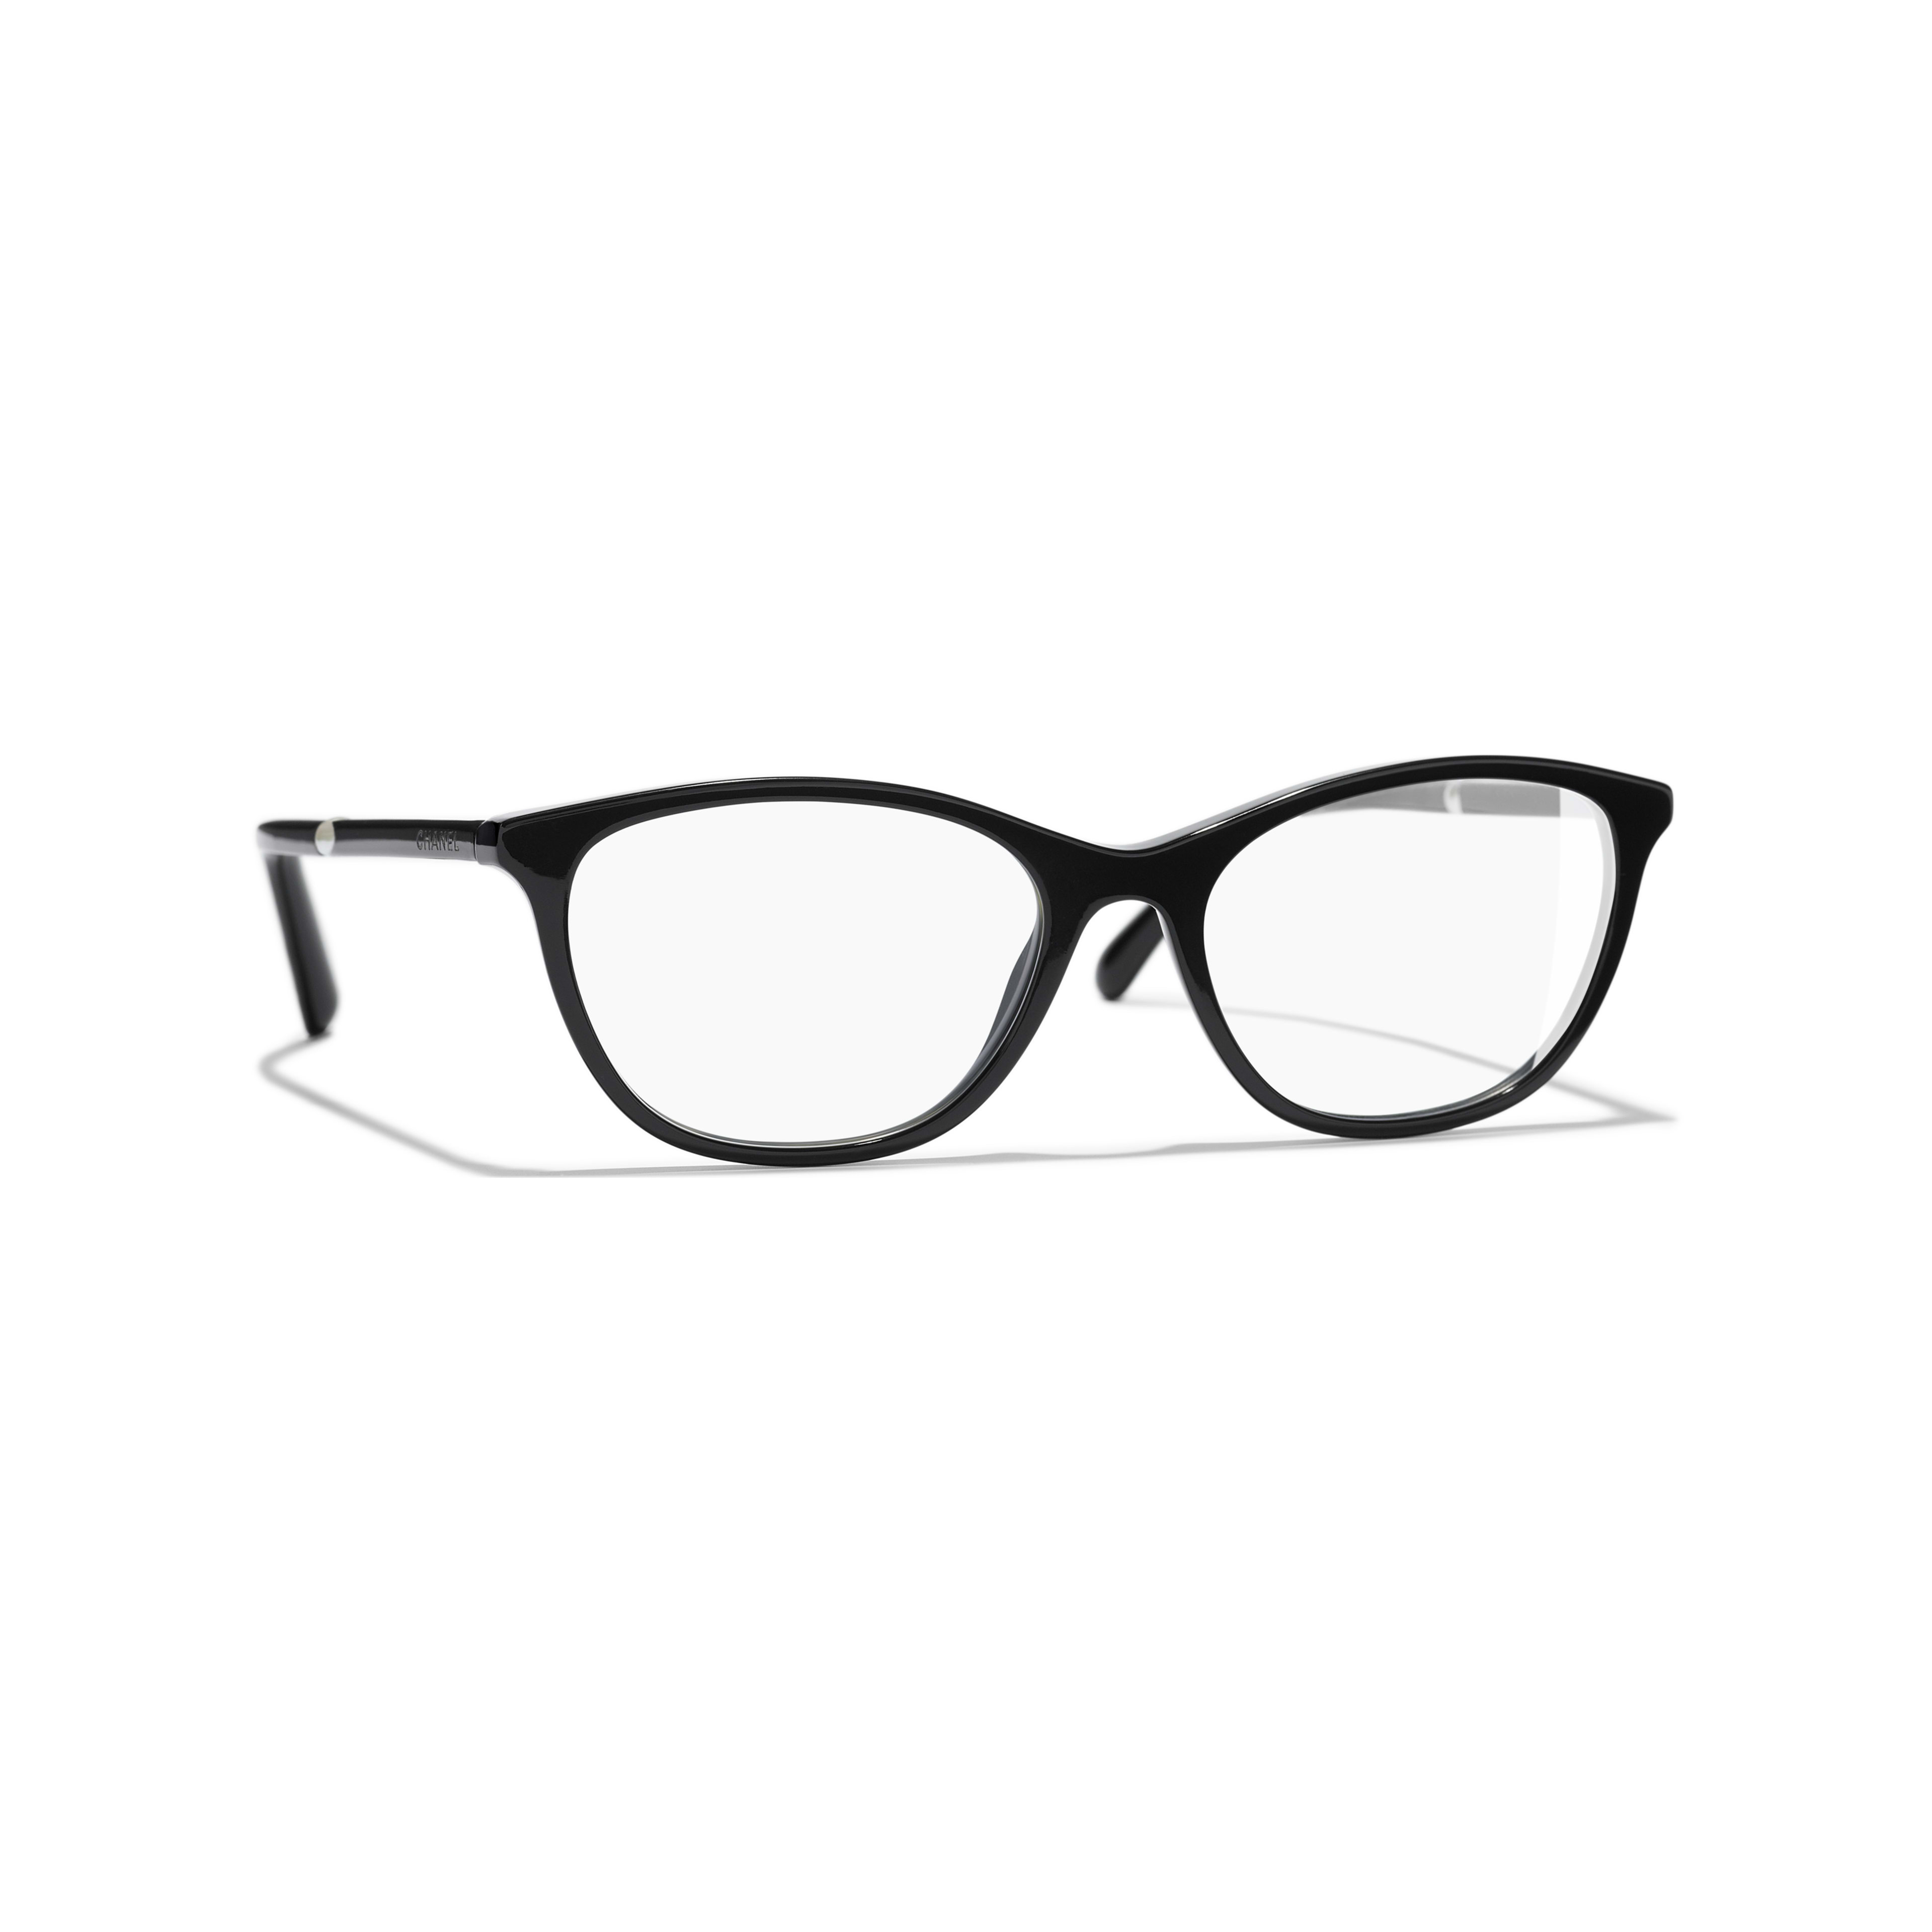 Rectangle Eyeglasses - Black - Acetate & Imitation Pearls - CHANEL - Default view - see standard sized version